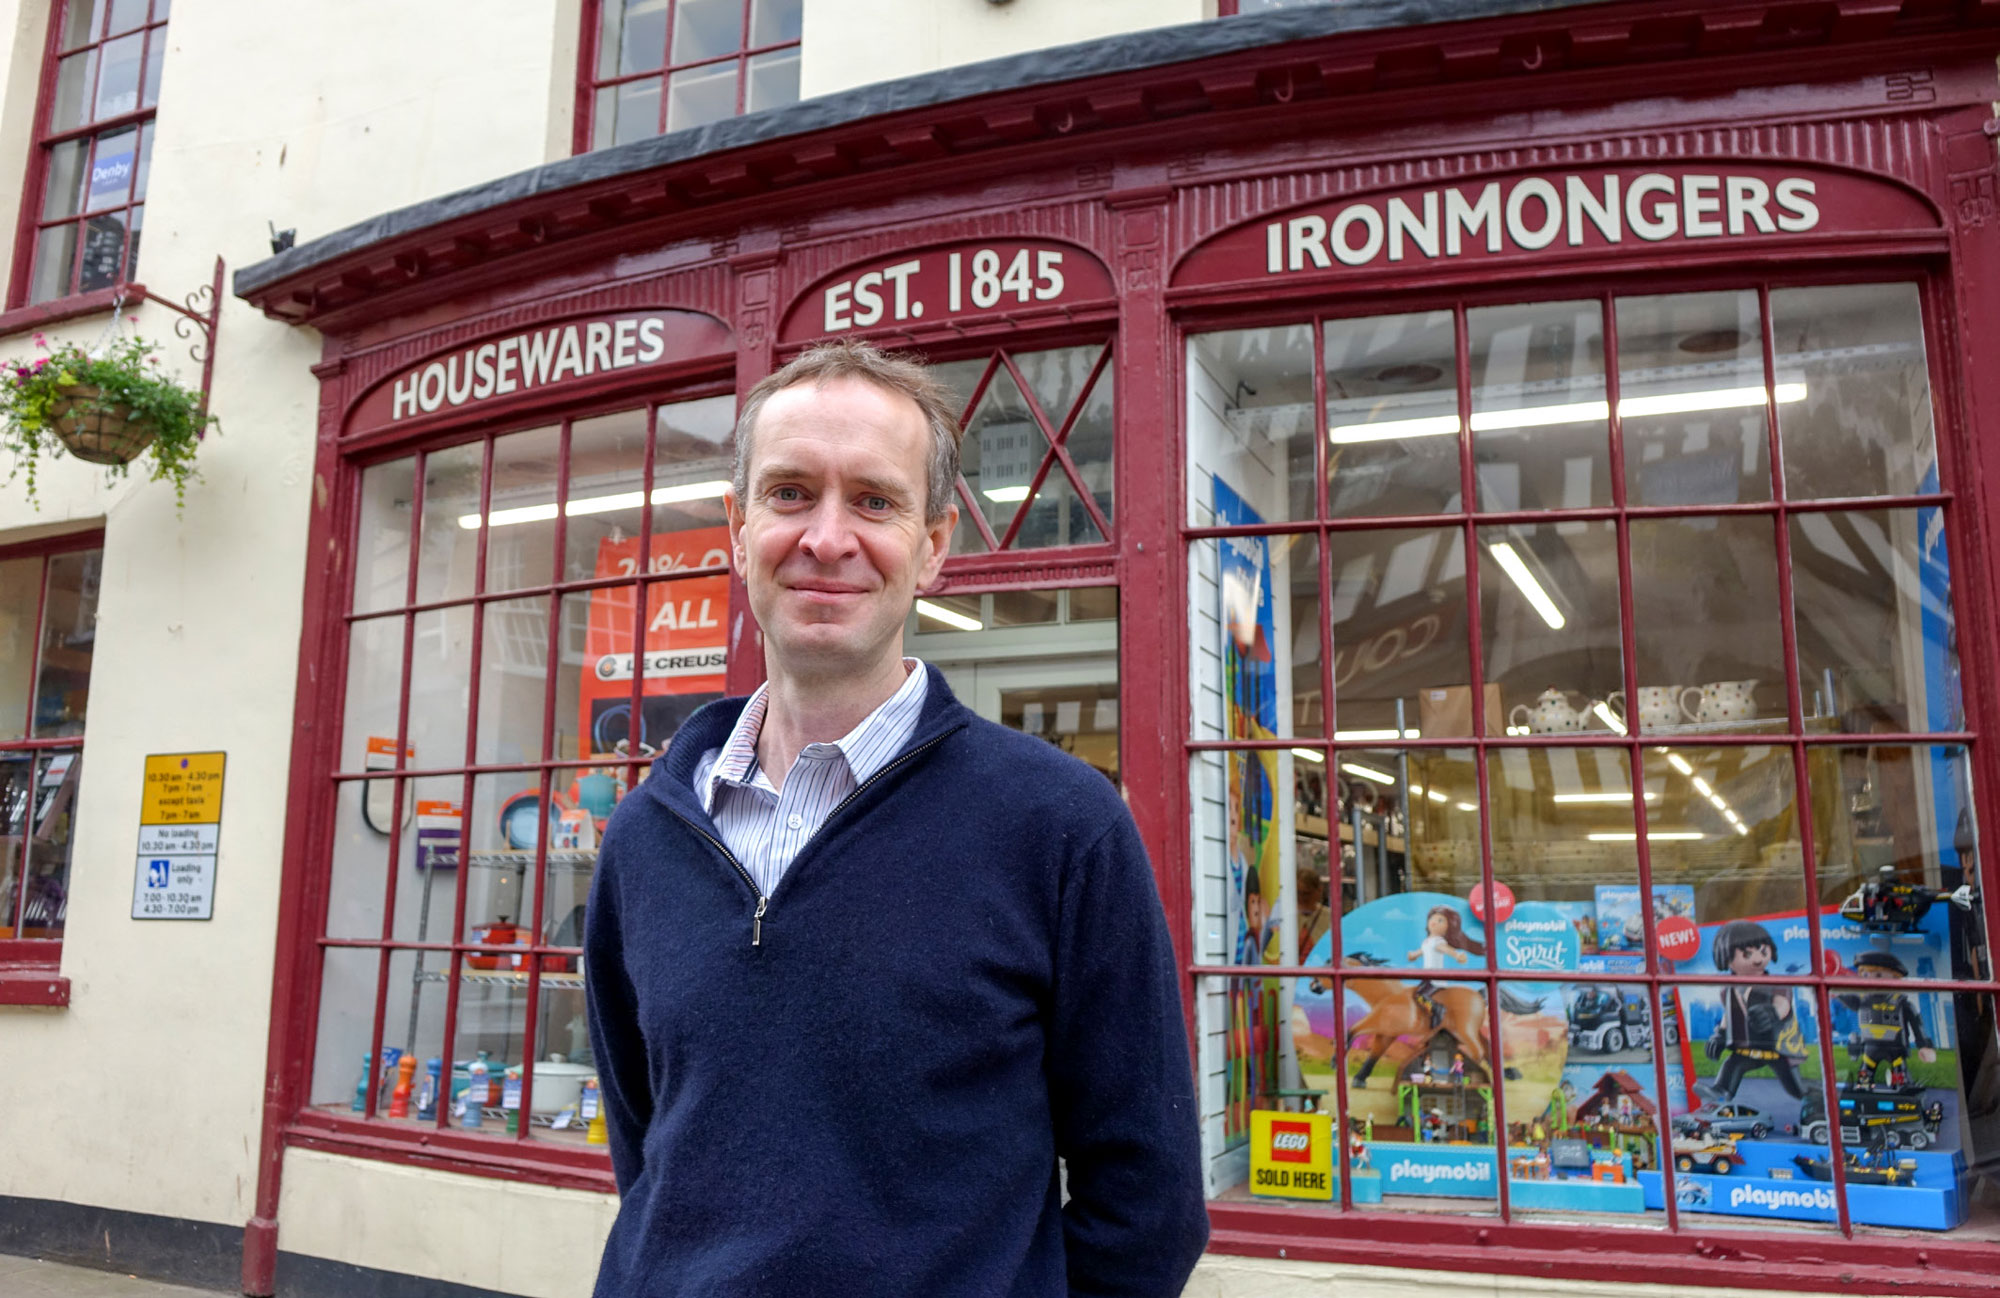 Philip Morris and Son independent retail shop